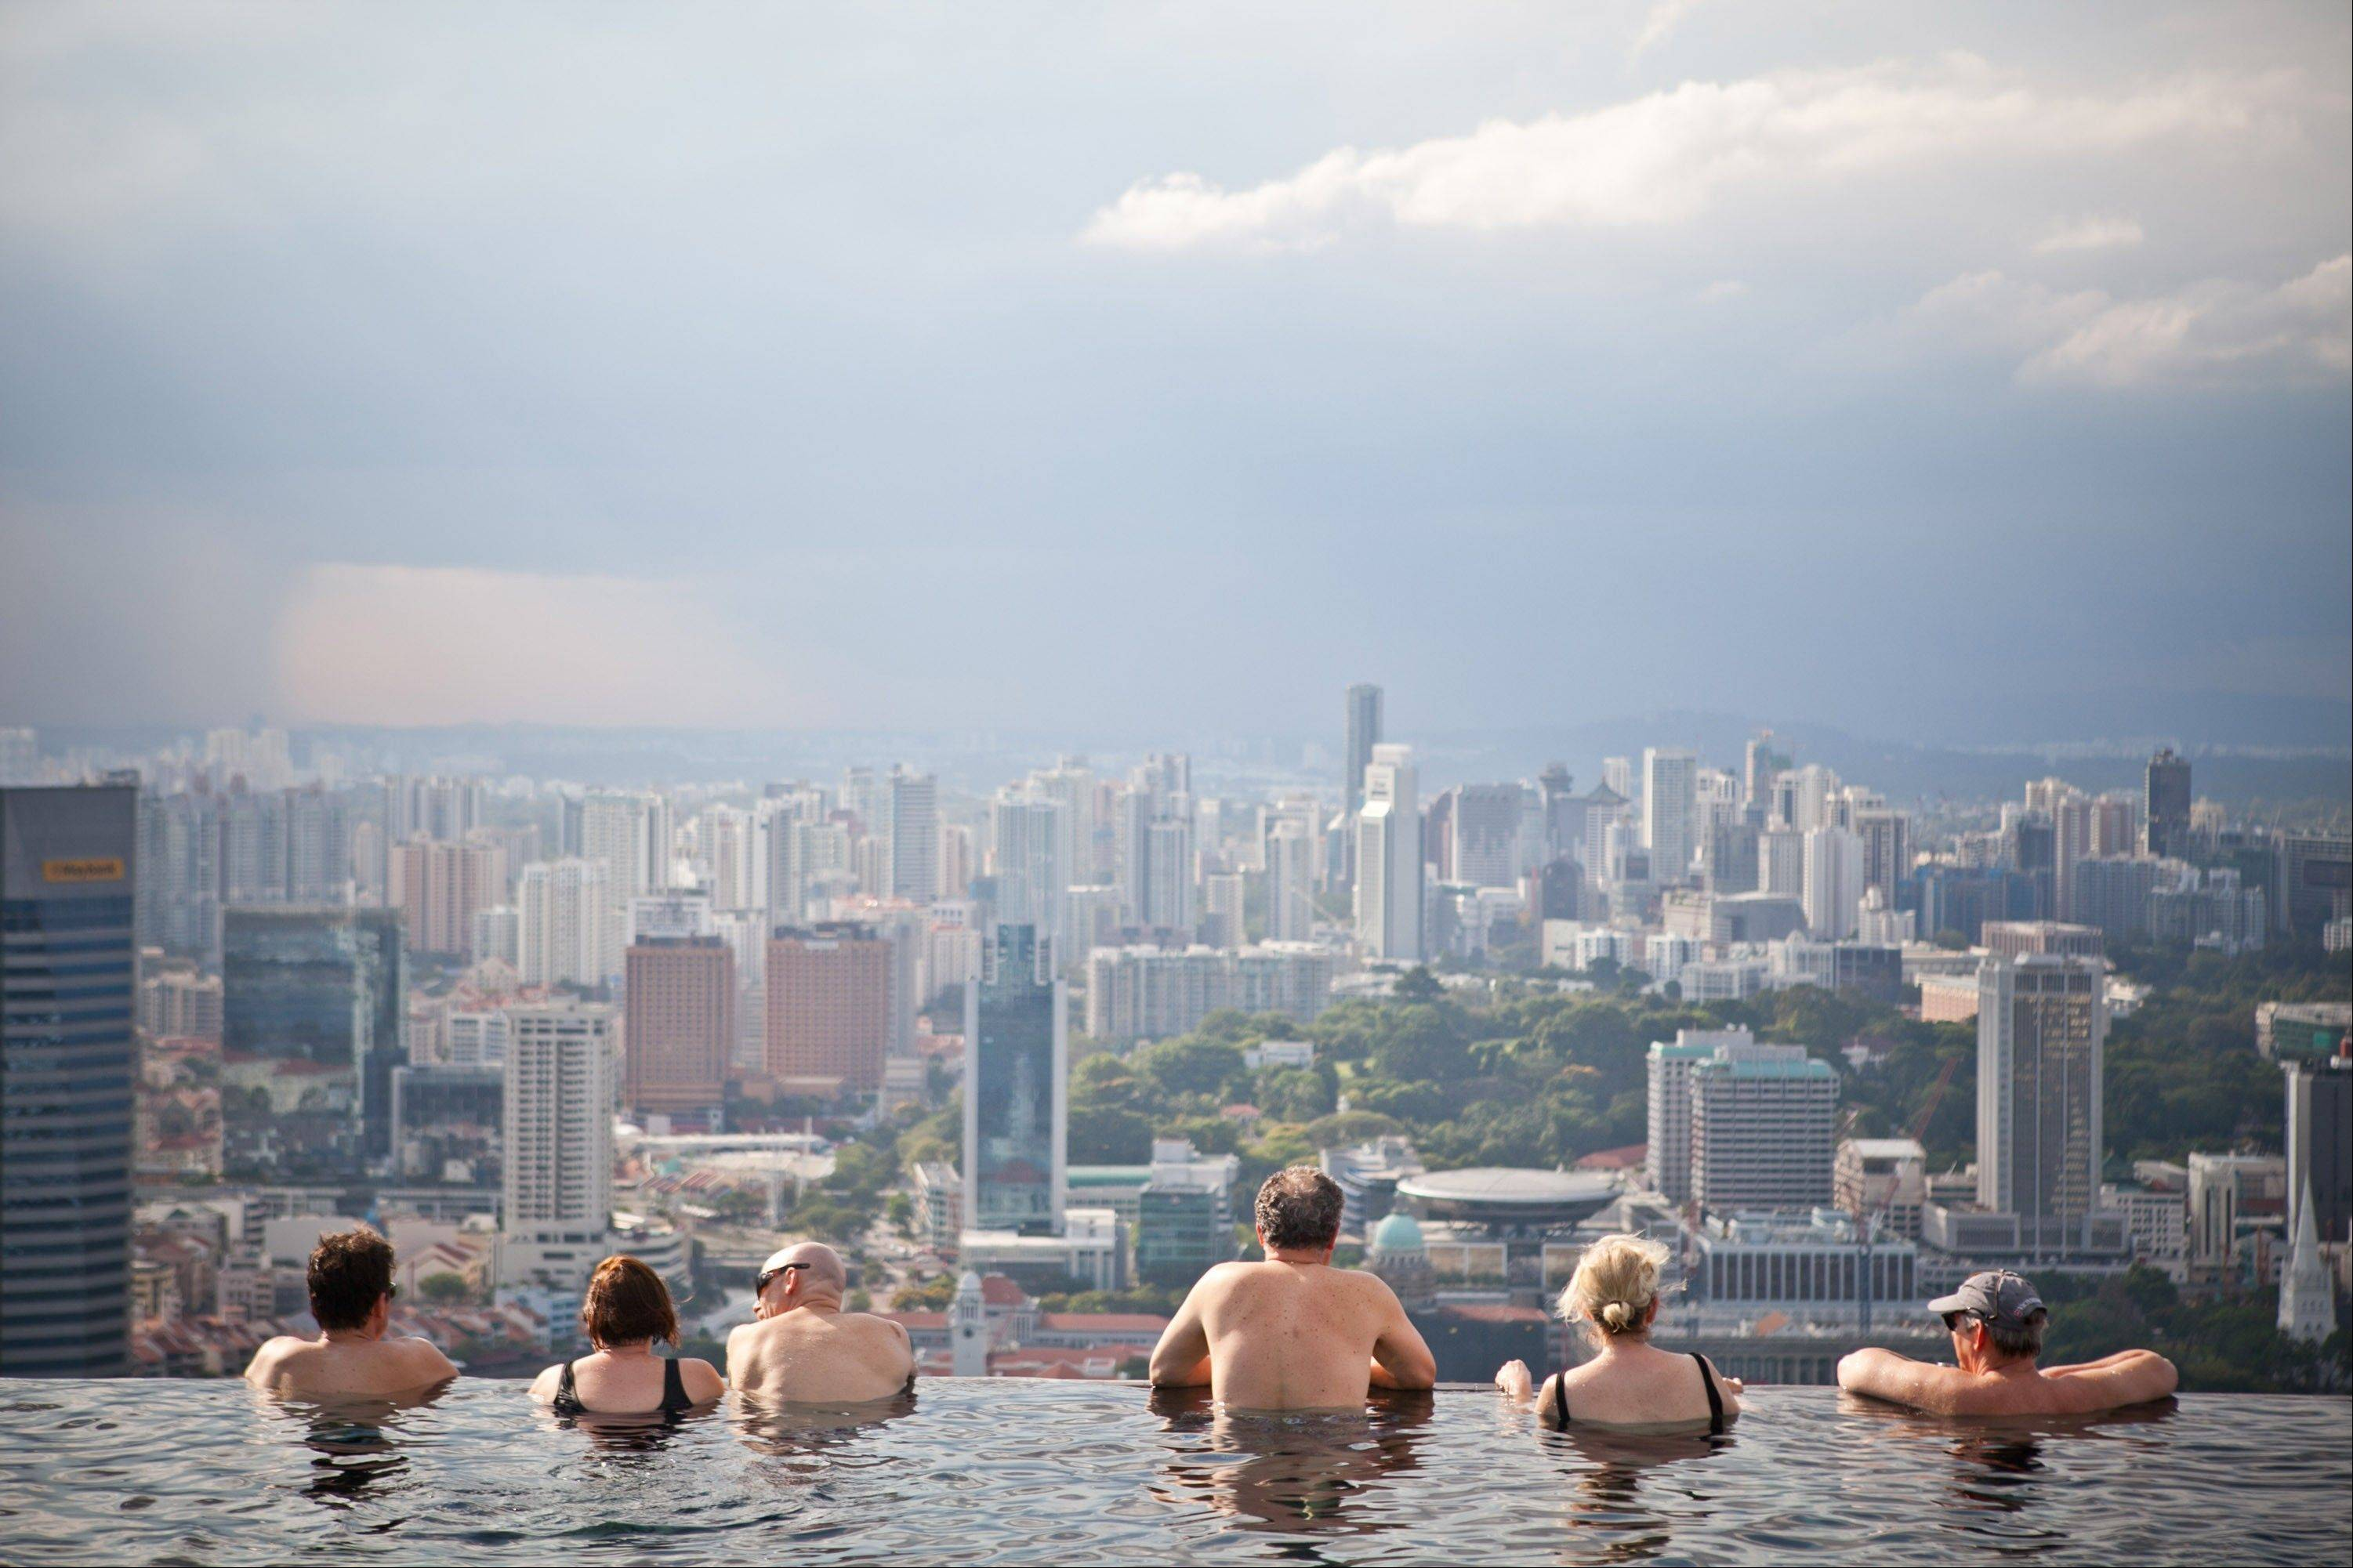 Hotel guests in the infinity pool at the SkyPark atop Marina Bay Sands look out towards the city skyline in Singapore, on Tuesday, Feb. 28, 2012. The number of visitors to the island rose to a record 13.2 million in 2011 as casino-resorts run by Genting Singapore Plc and Las Vegas Sands Corp. lured tourists.